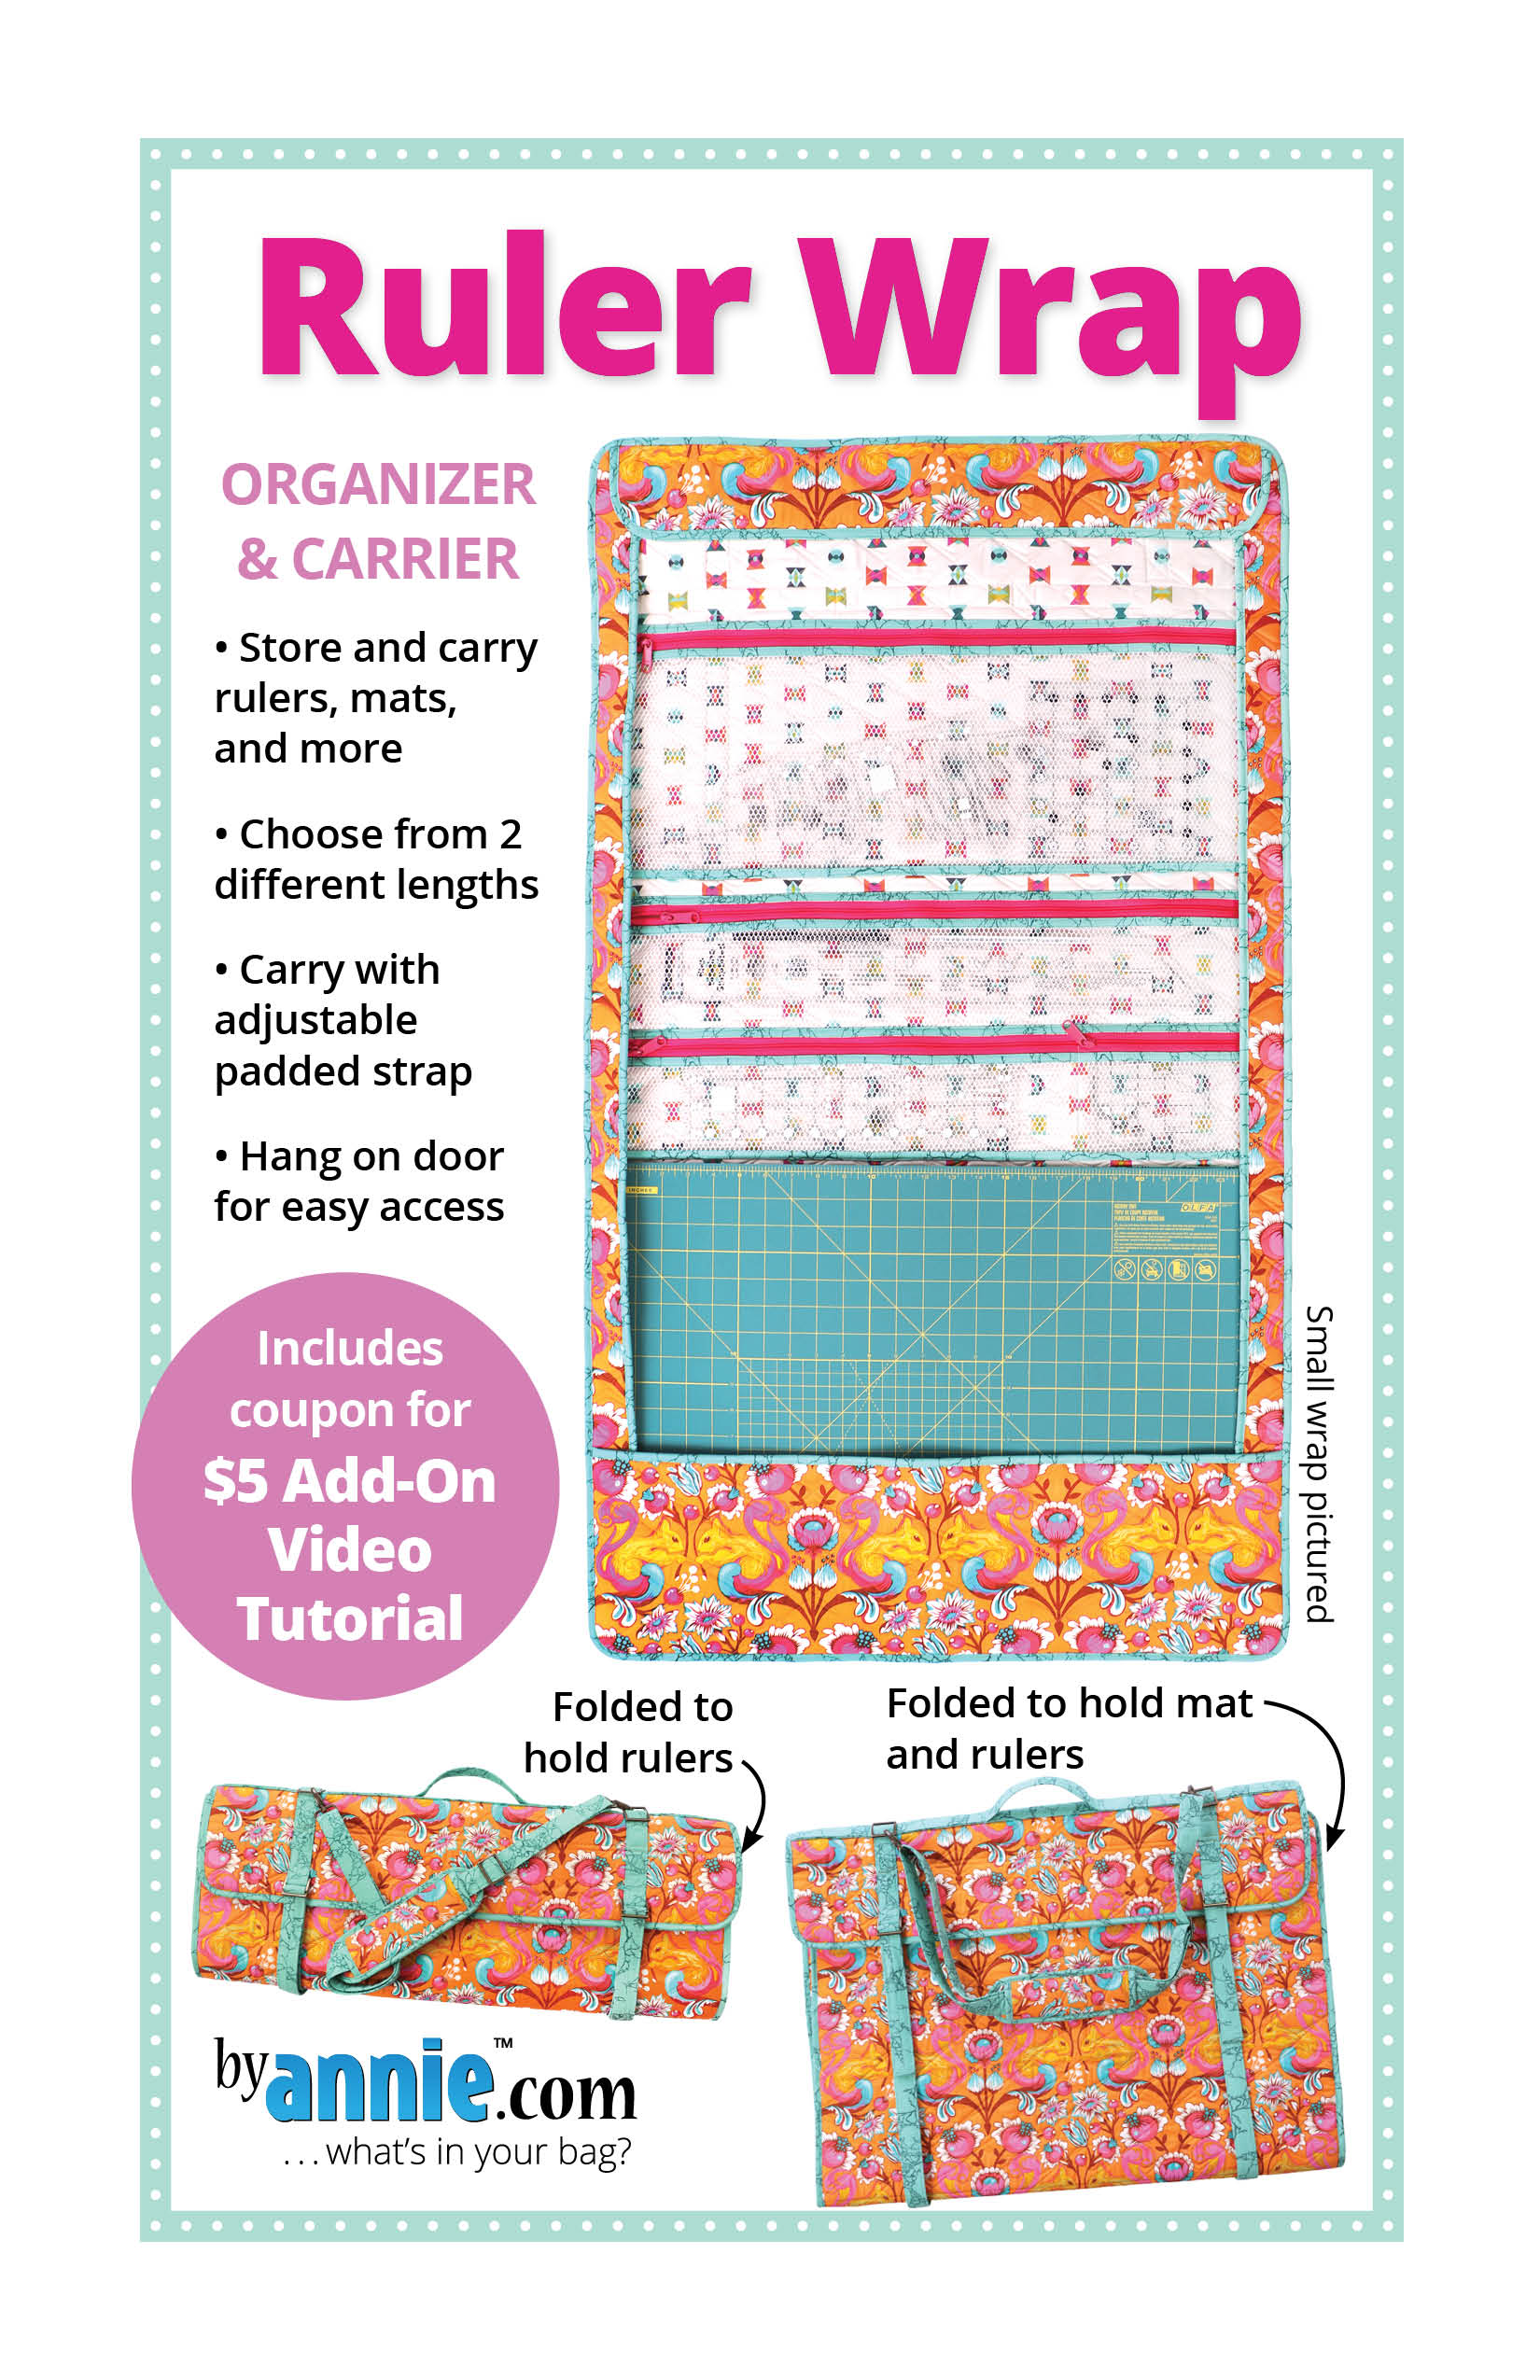 How to make an organizer for your loved one (photo and video instruction)